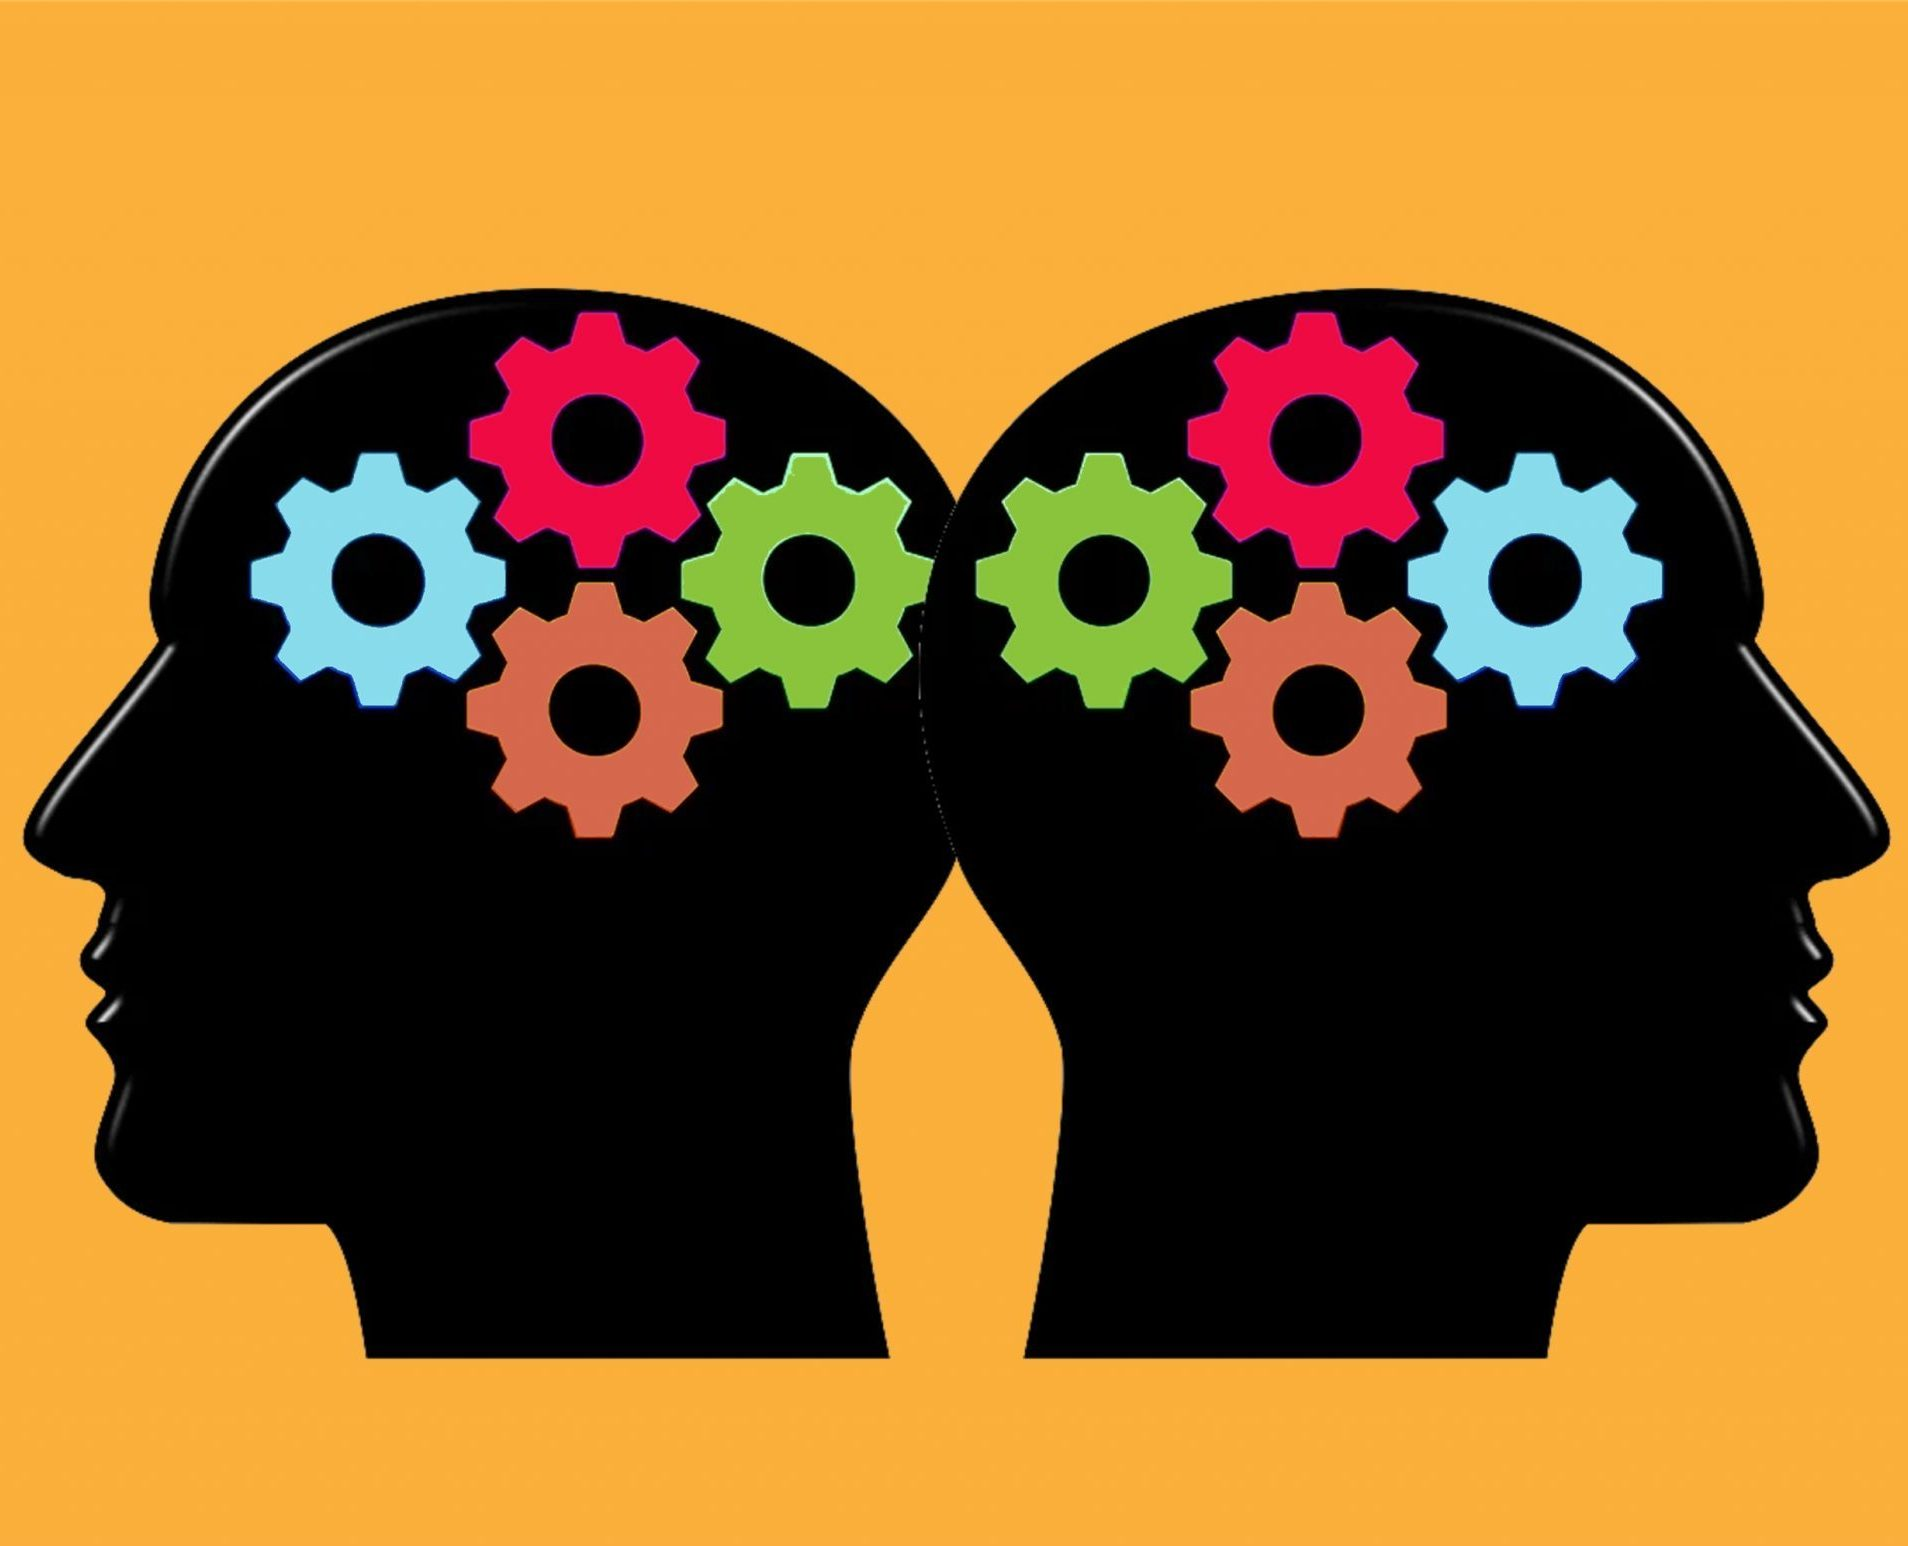 Illustration of 2 silhouette heads with coloured gears inside for knowledge and experience